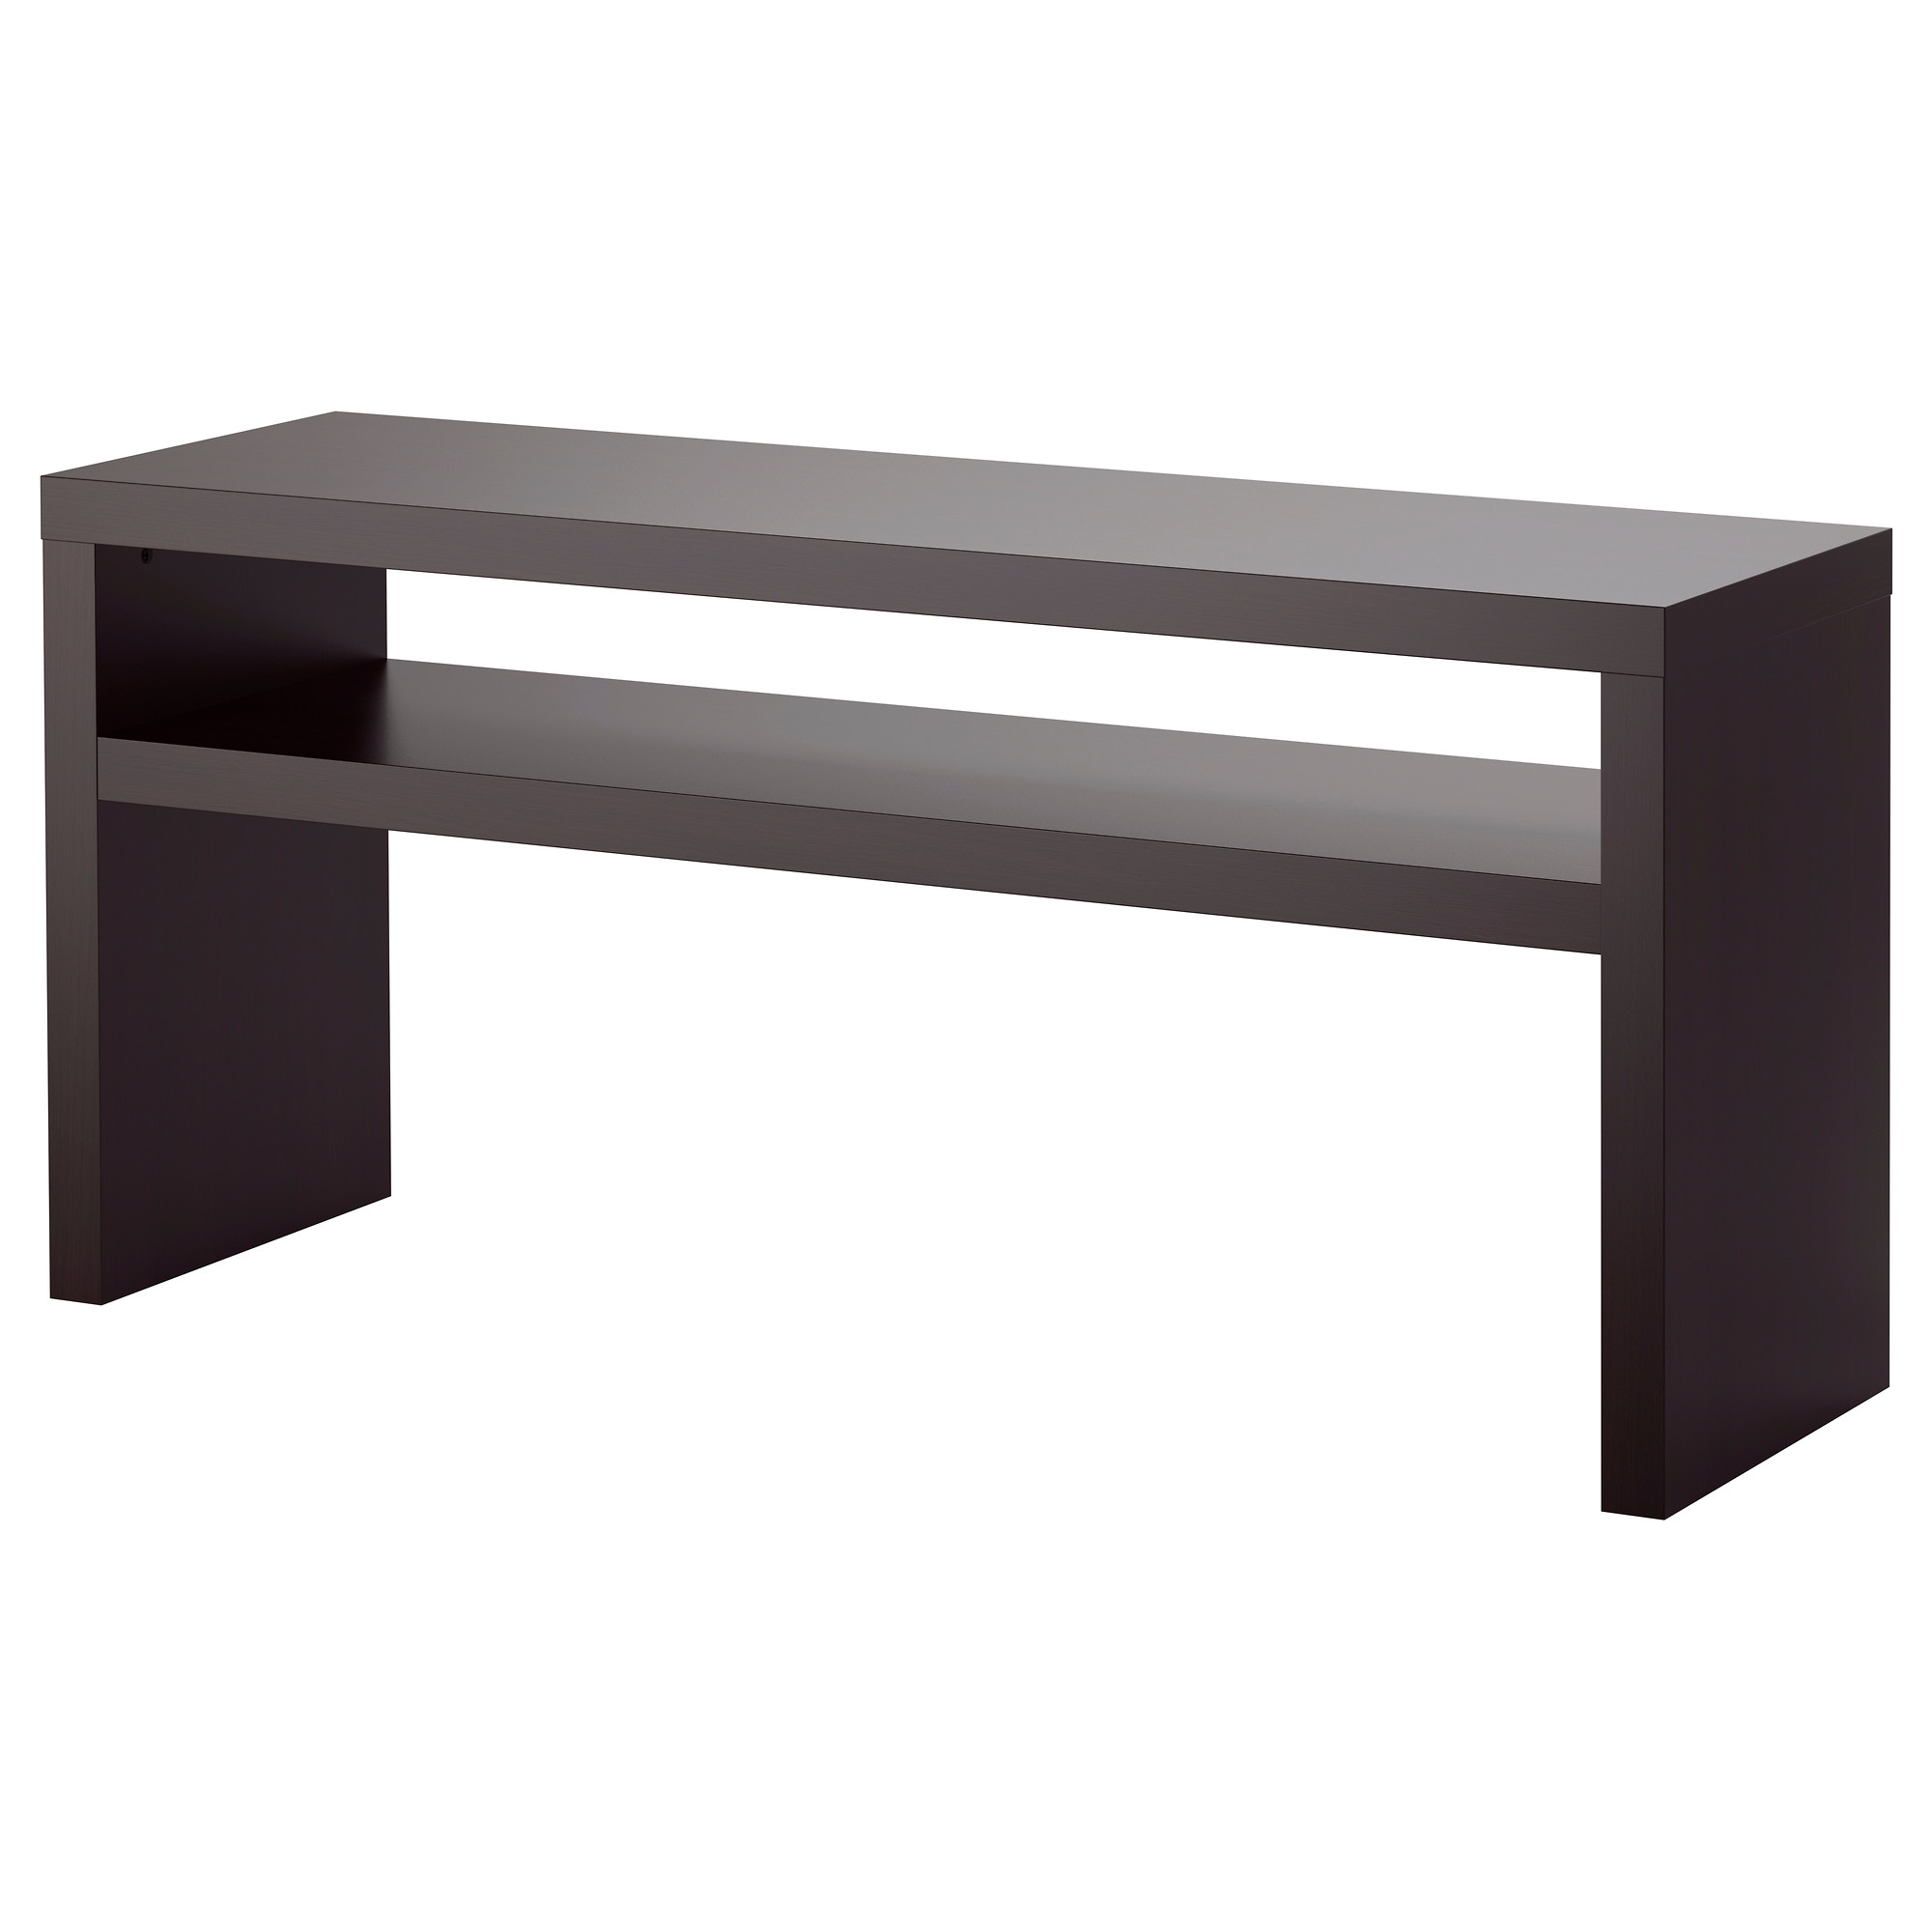 sofa tables lack console table - ikea IOXRLQT